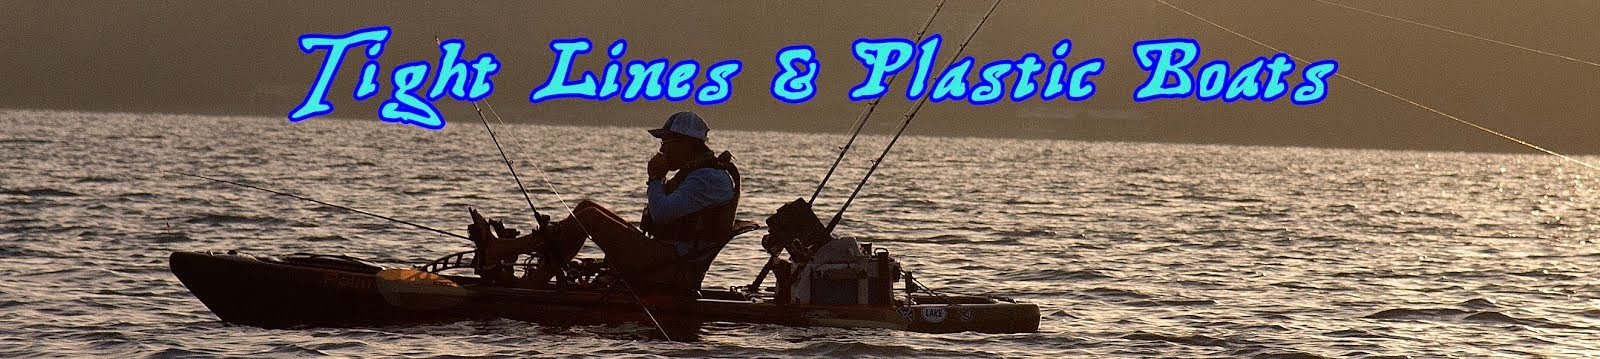 Tight Lines and Plastic Boats